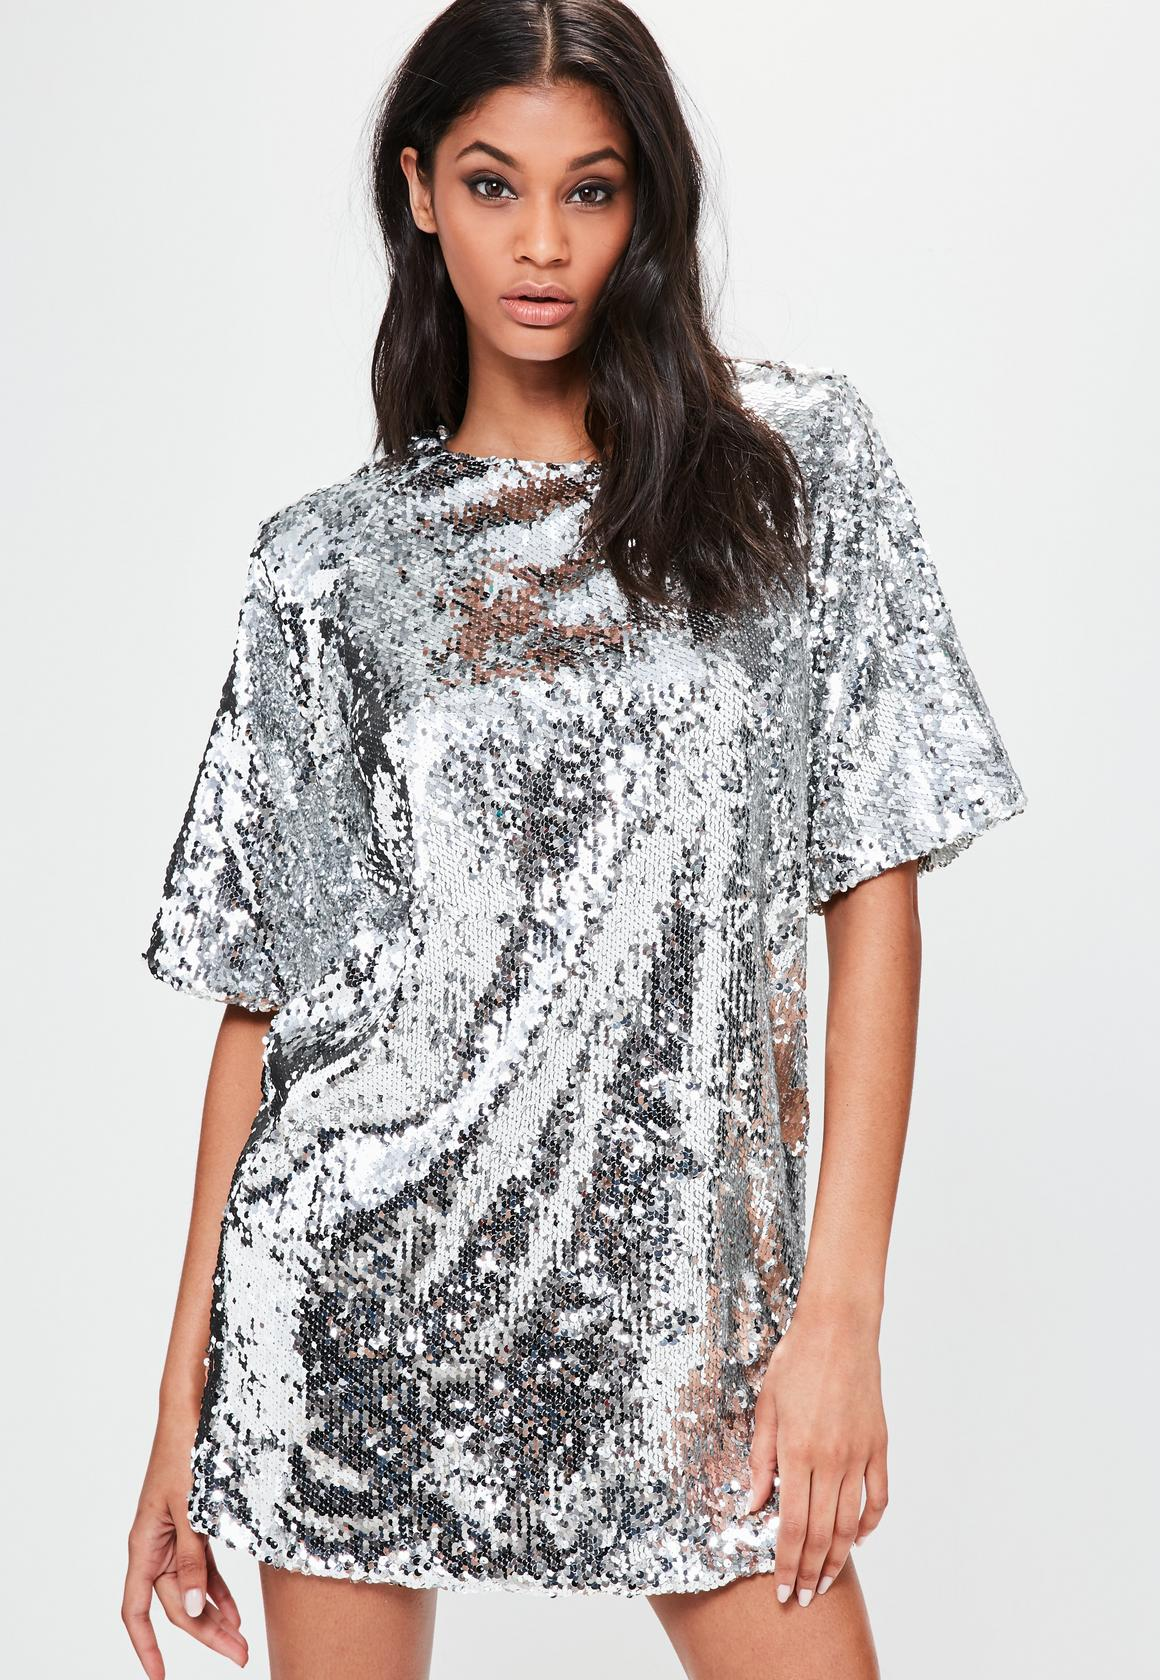 silver sequin dress londunn + missguided silver sequin mini dress QJRSOKB